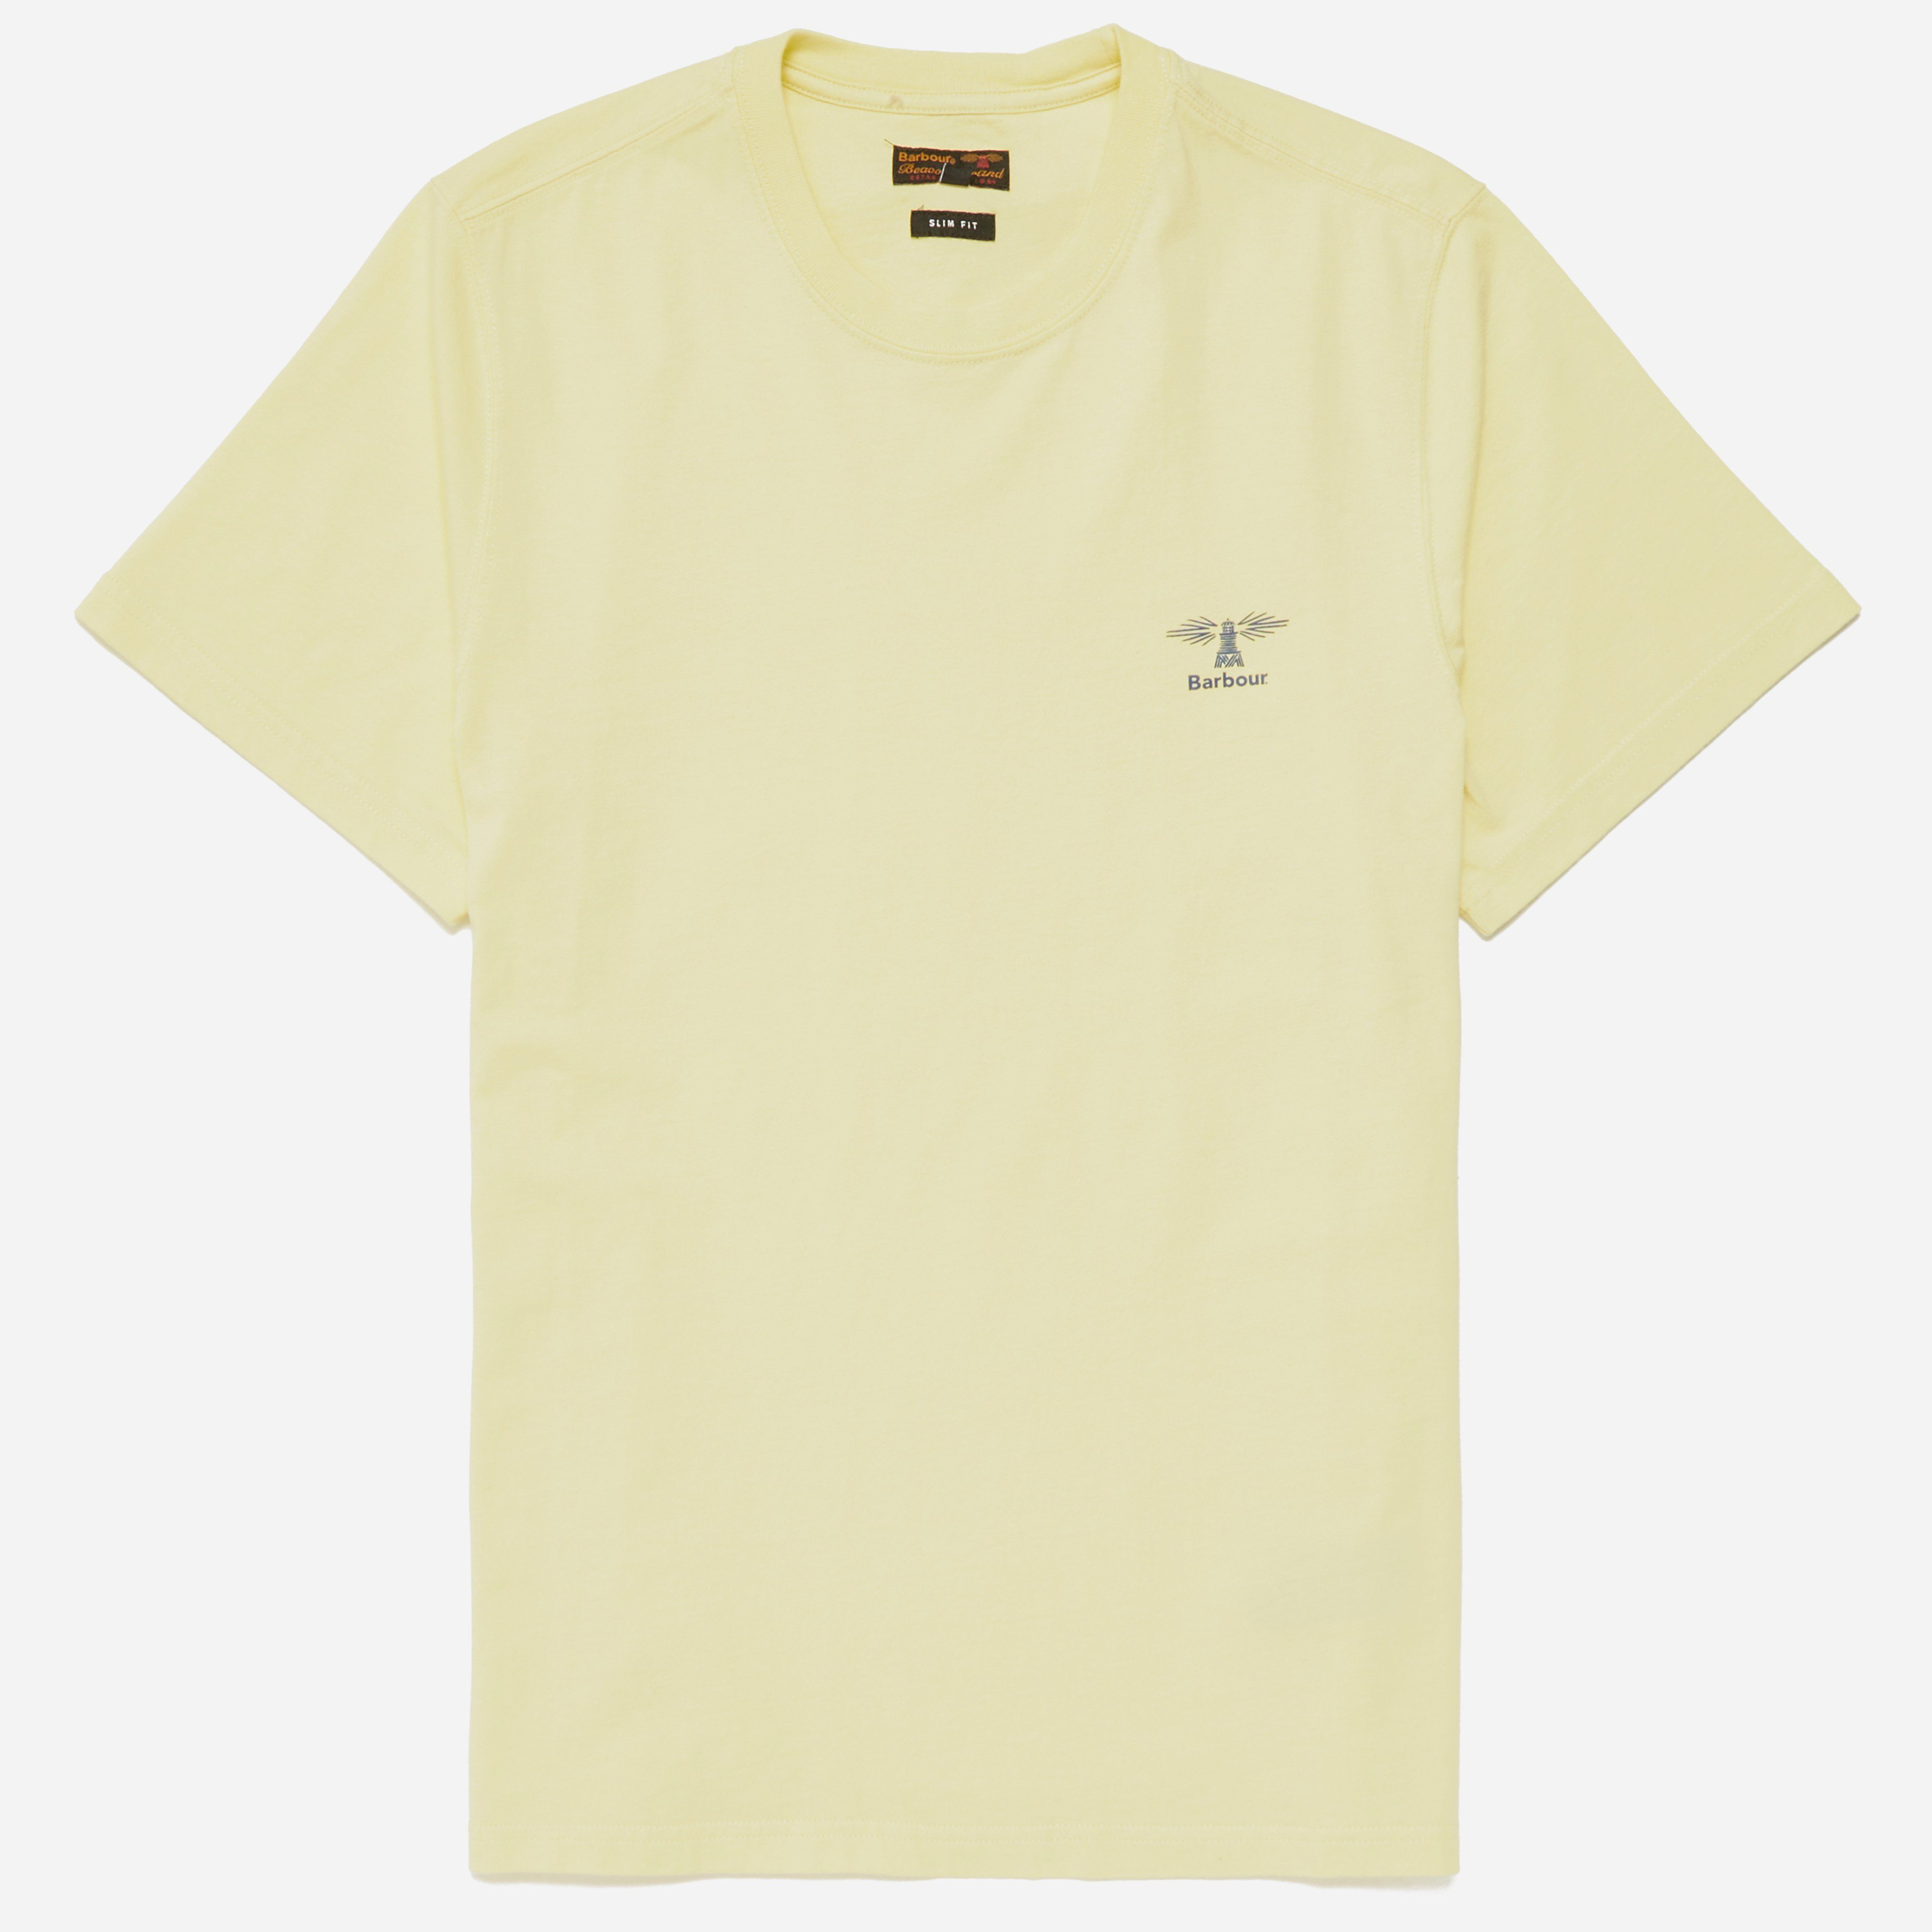 Barbour Standards T-shirt